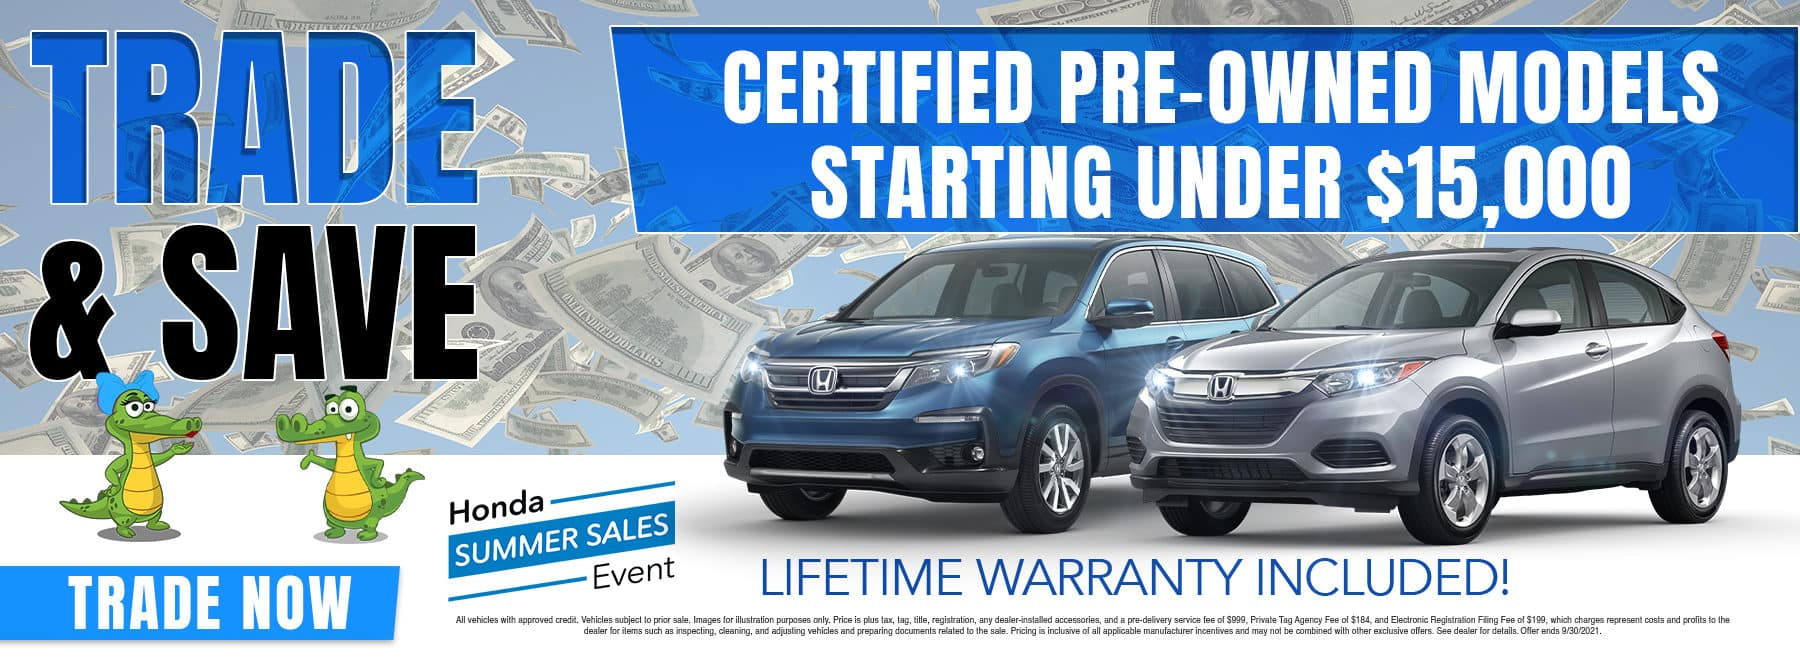 Trade & Save | Certified Pre-Owned Models Starting Under $15,000 |